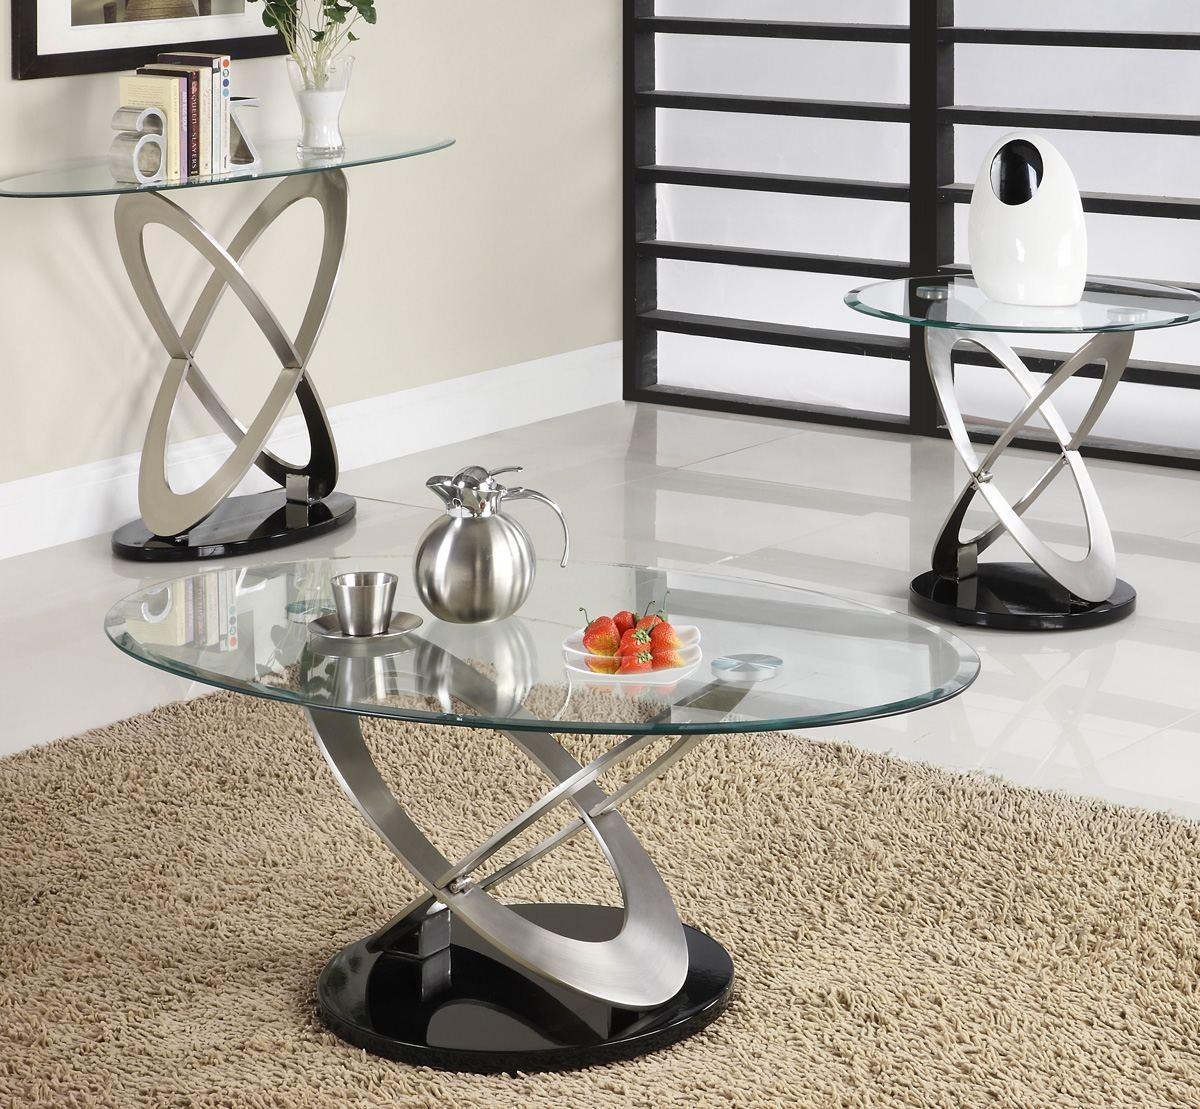 Homelegance Firth Oval Glass Sofa Table In Chrome & Black Metal Regarding Metal Glass Sofa Tables (View 5 of 22)